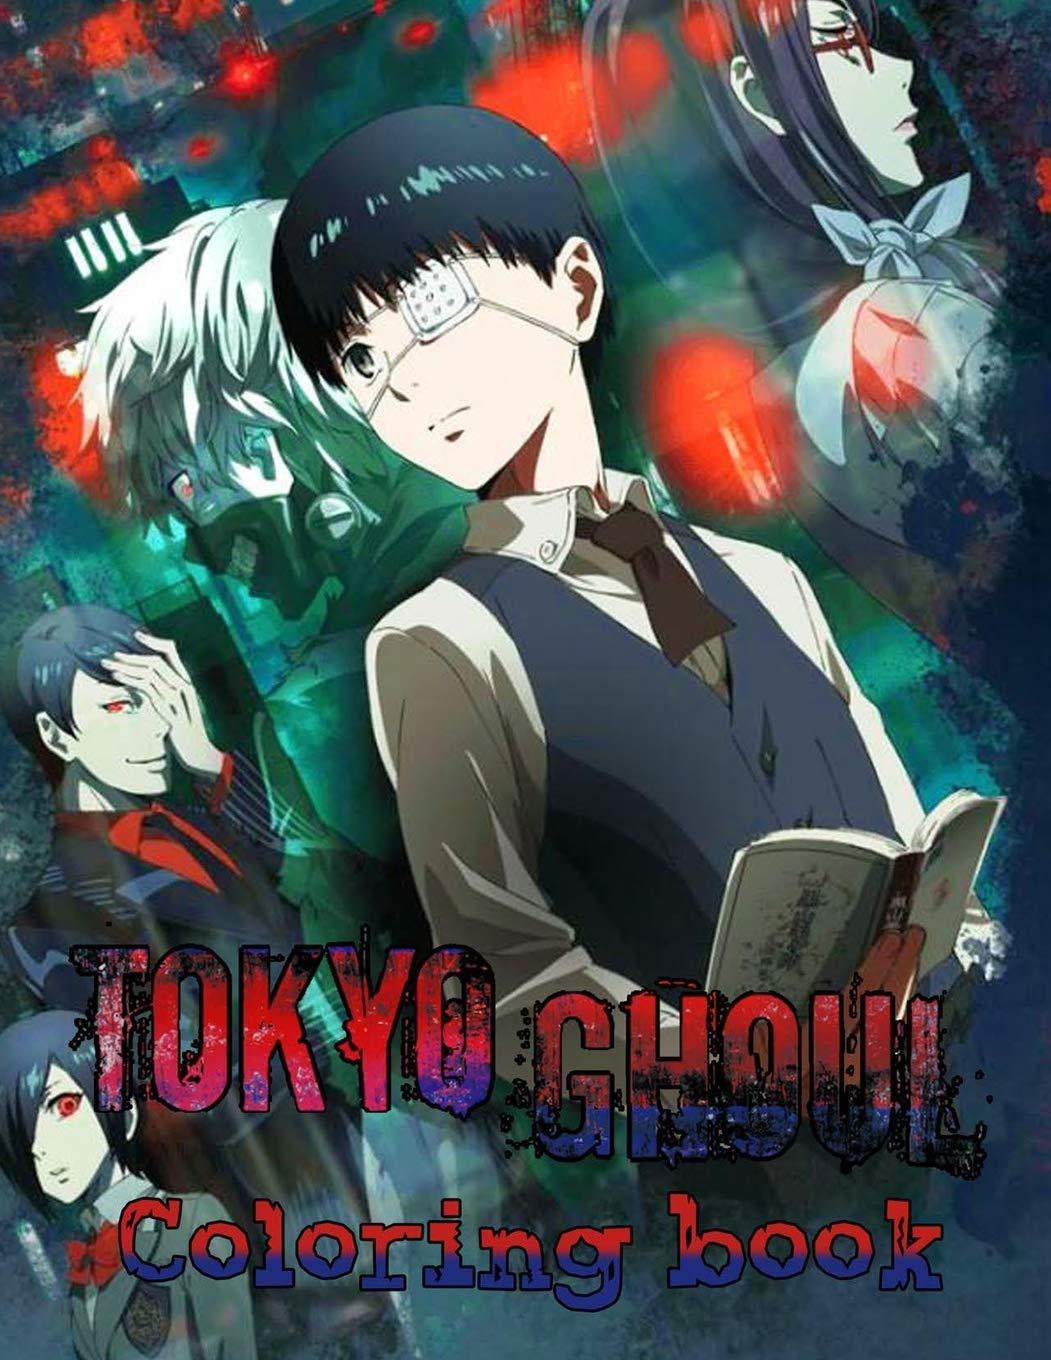 Amazon Com Tokyo Ghoul Coloring Book For Adults And For Kids High Quality The Best 30 High Quality Illustrations 73 Page More Then 30 Character Tokyo Ghoul Managa Tokyo Ghoul Coloring Book 9798682233670 Ghost Anime